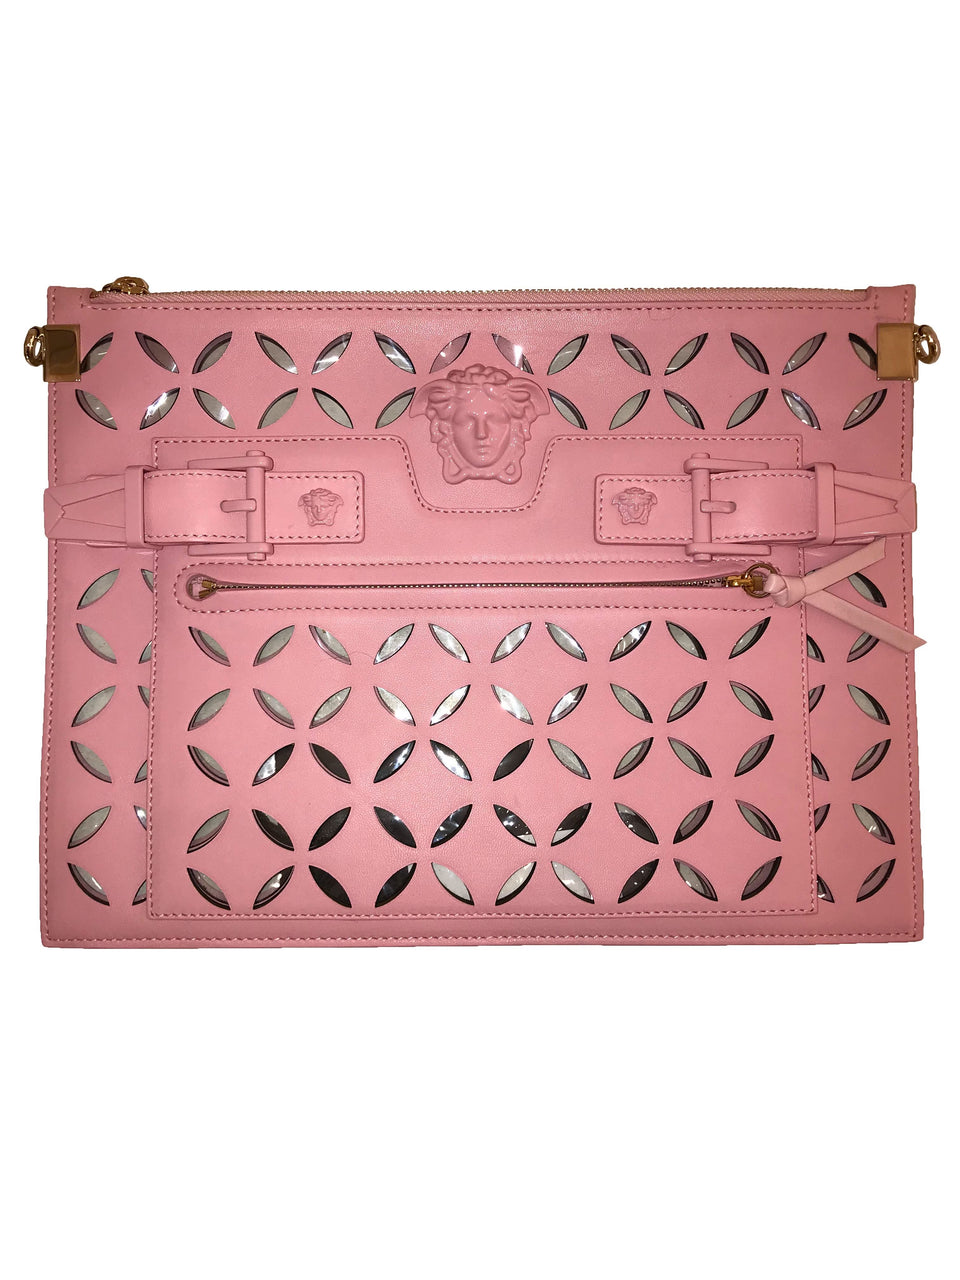 Versace Pink Laser Cut Leather Clutch